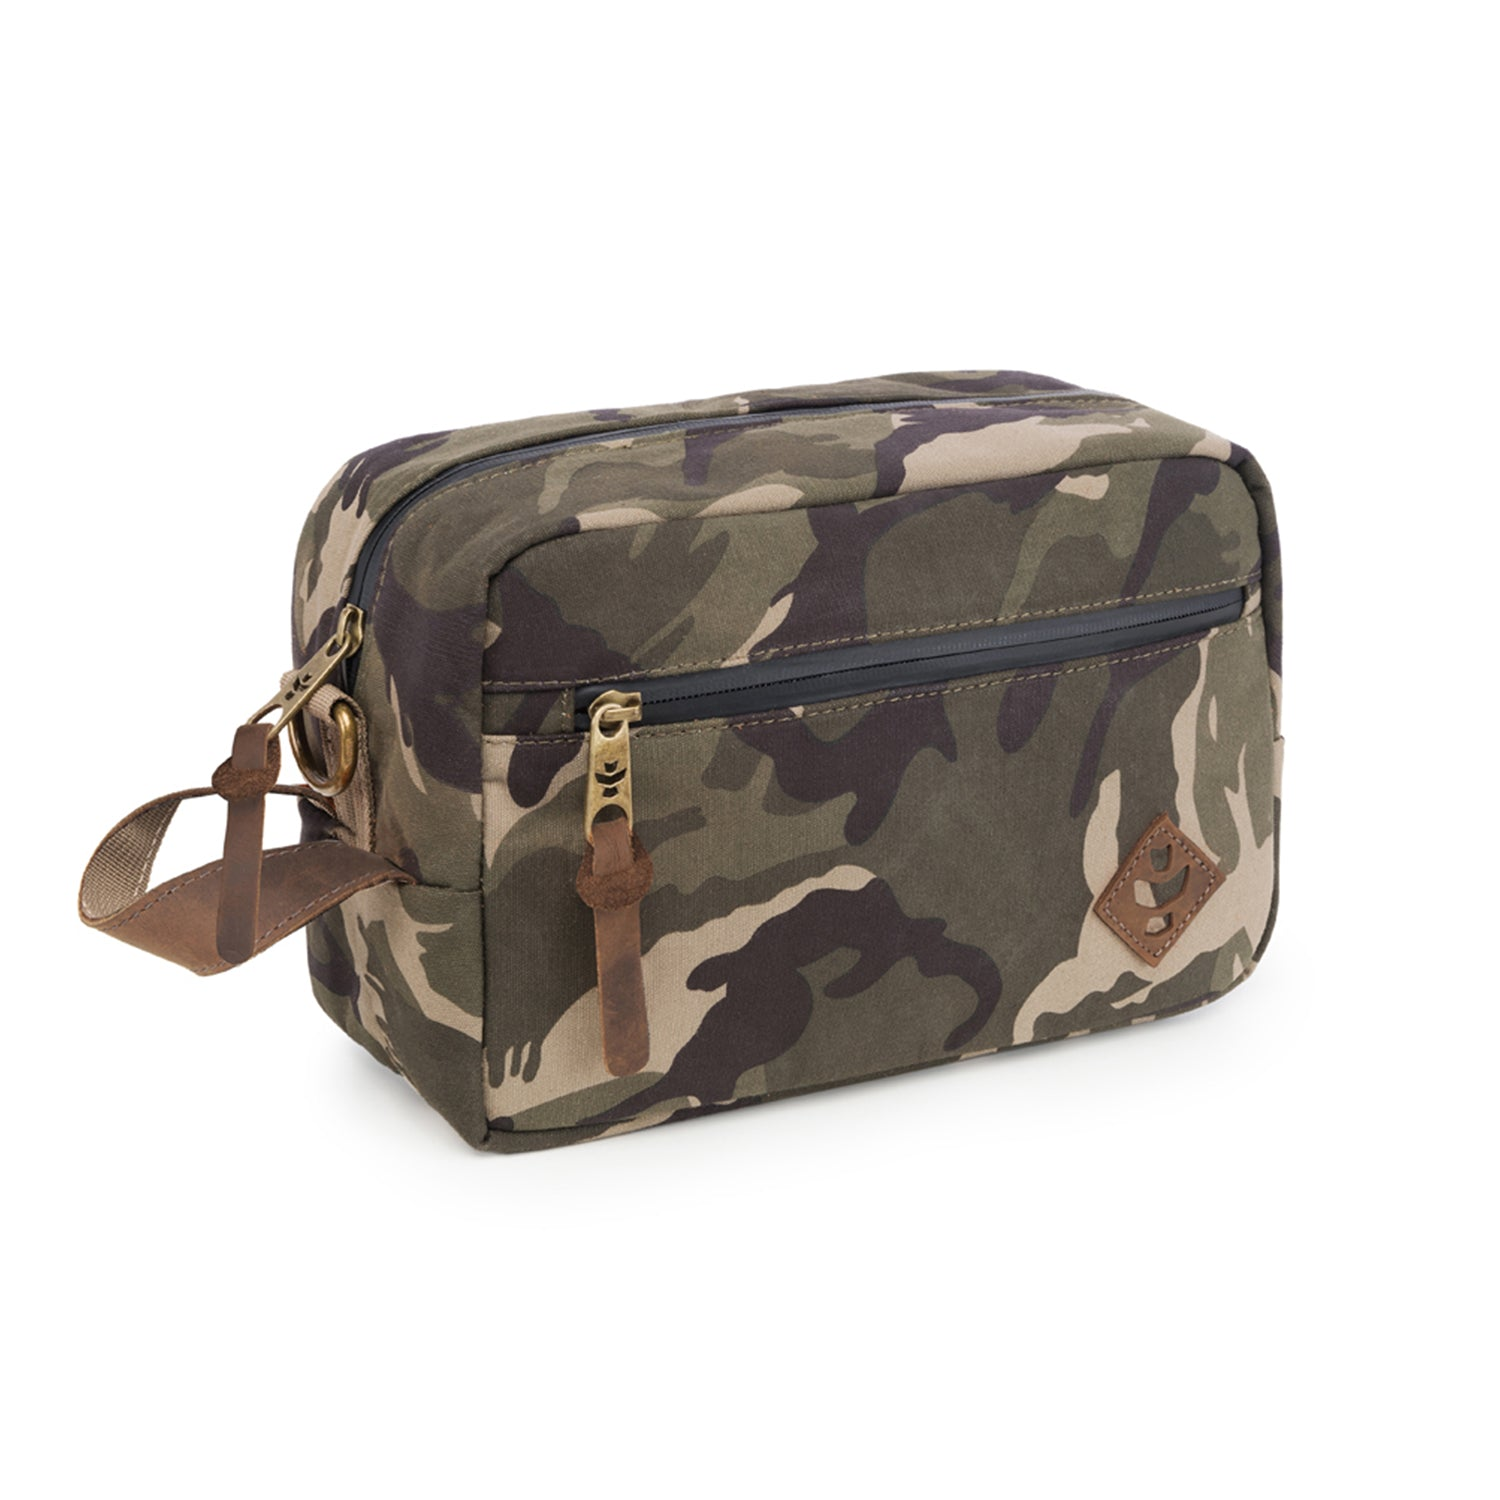 Camo Brown Canvas Smell Proof Water Resistant Toiletry Dopp Kit Bag